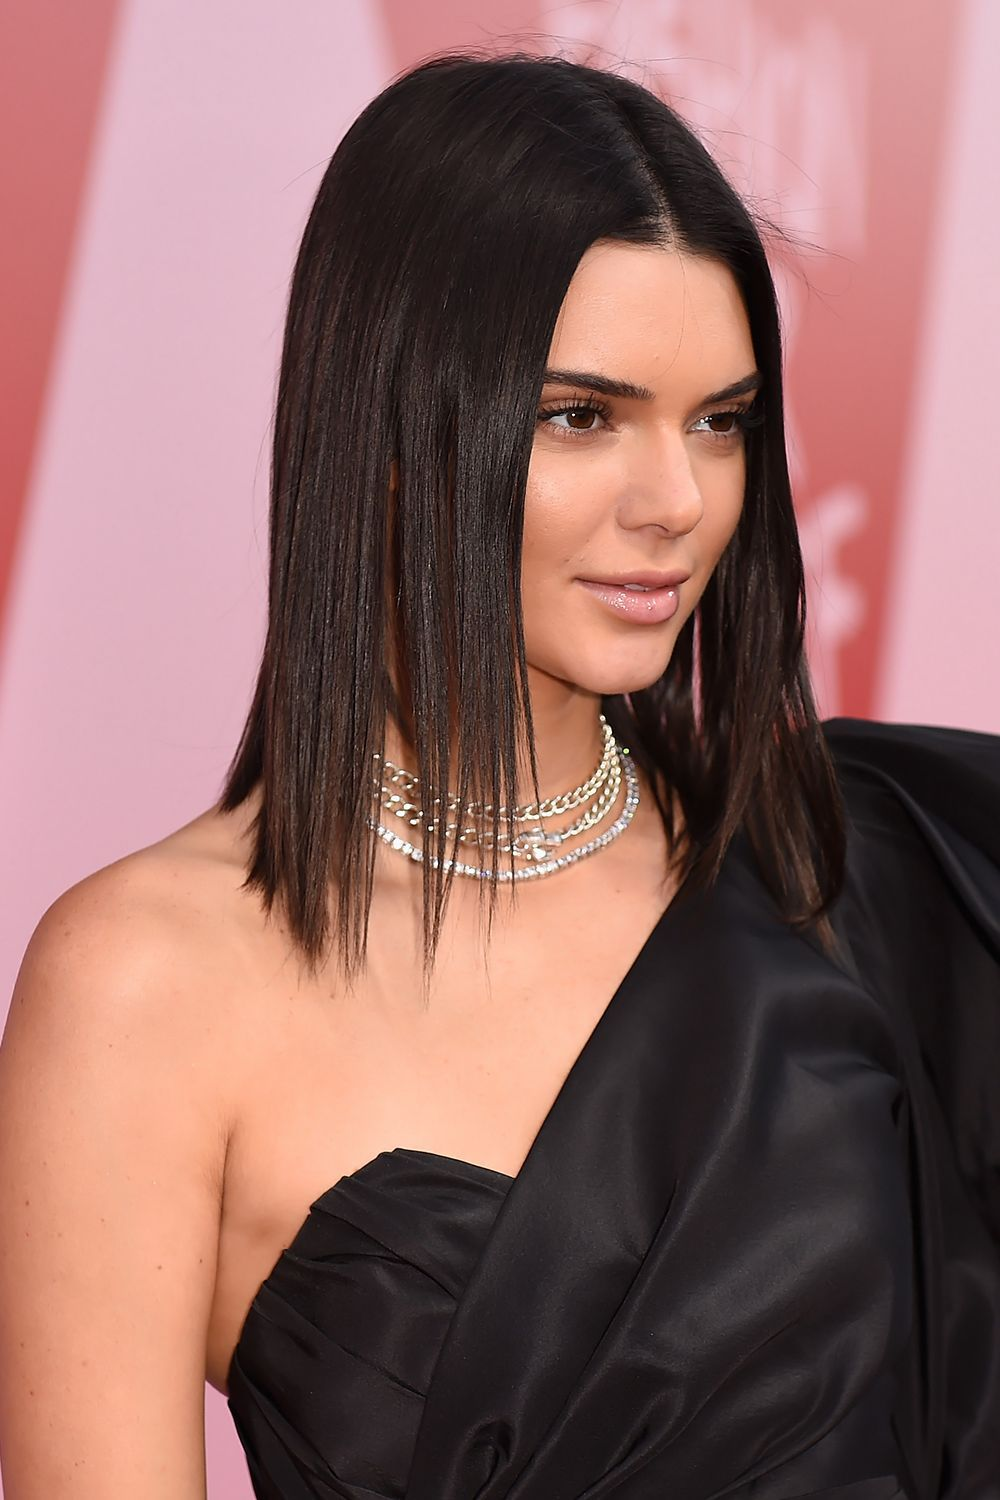 Kendall jenner has gotten into hot water for some of her comments and statements over the years, and fans think she might be the most hated supermodel. Hair Straighteners That Crush It In The Styling Department Kendall Jenner Hair Jenner Hair Kendall Jenner Short Hair